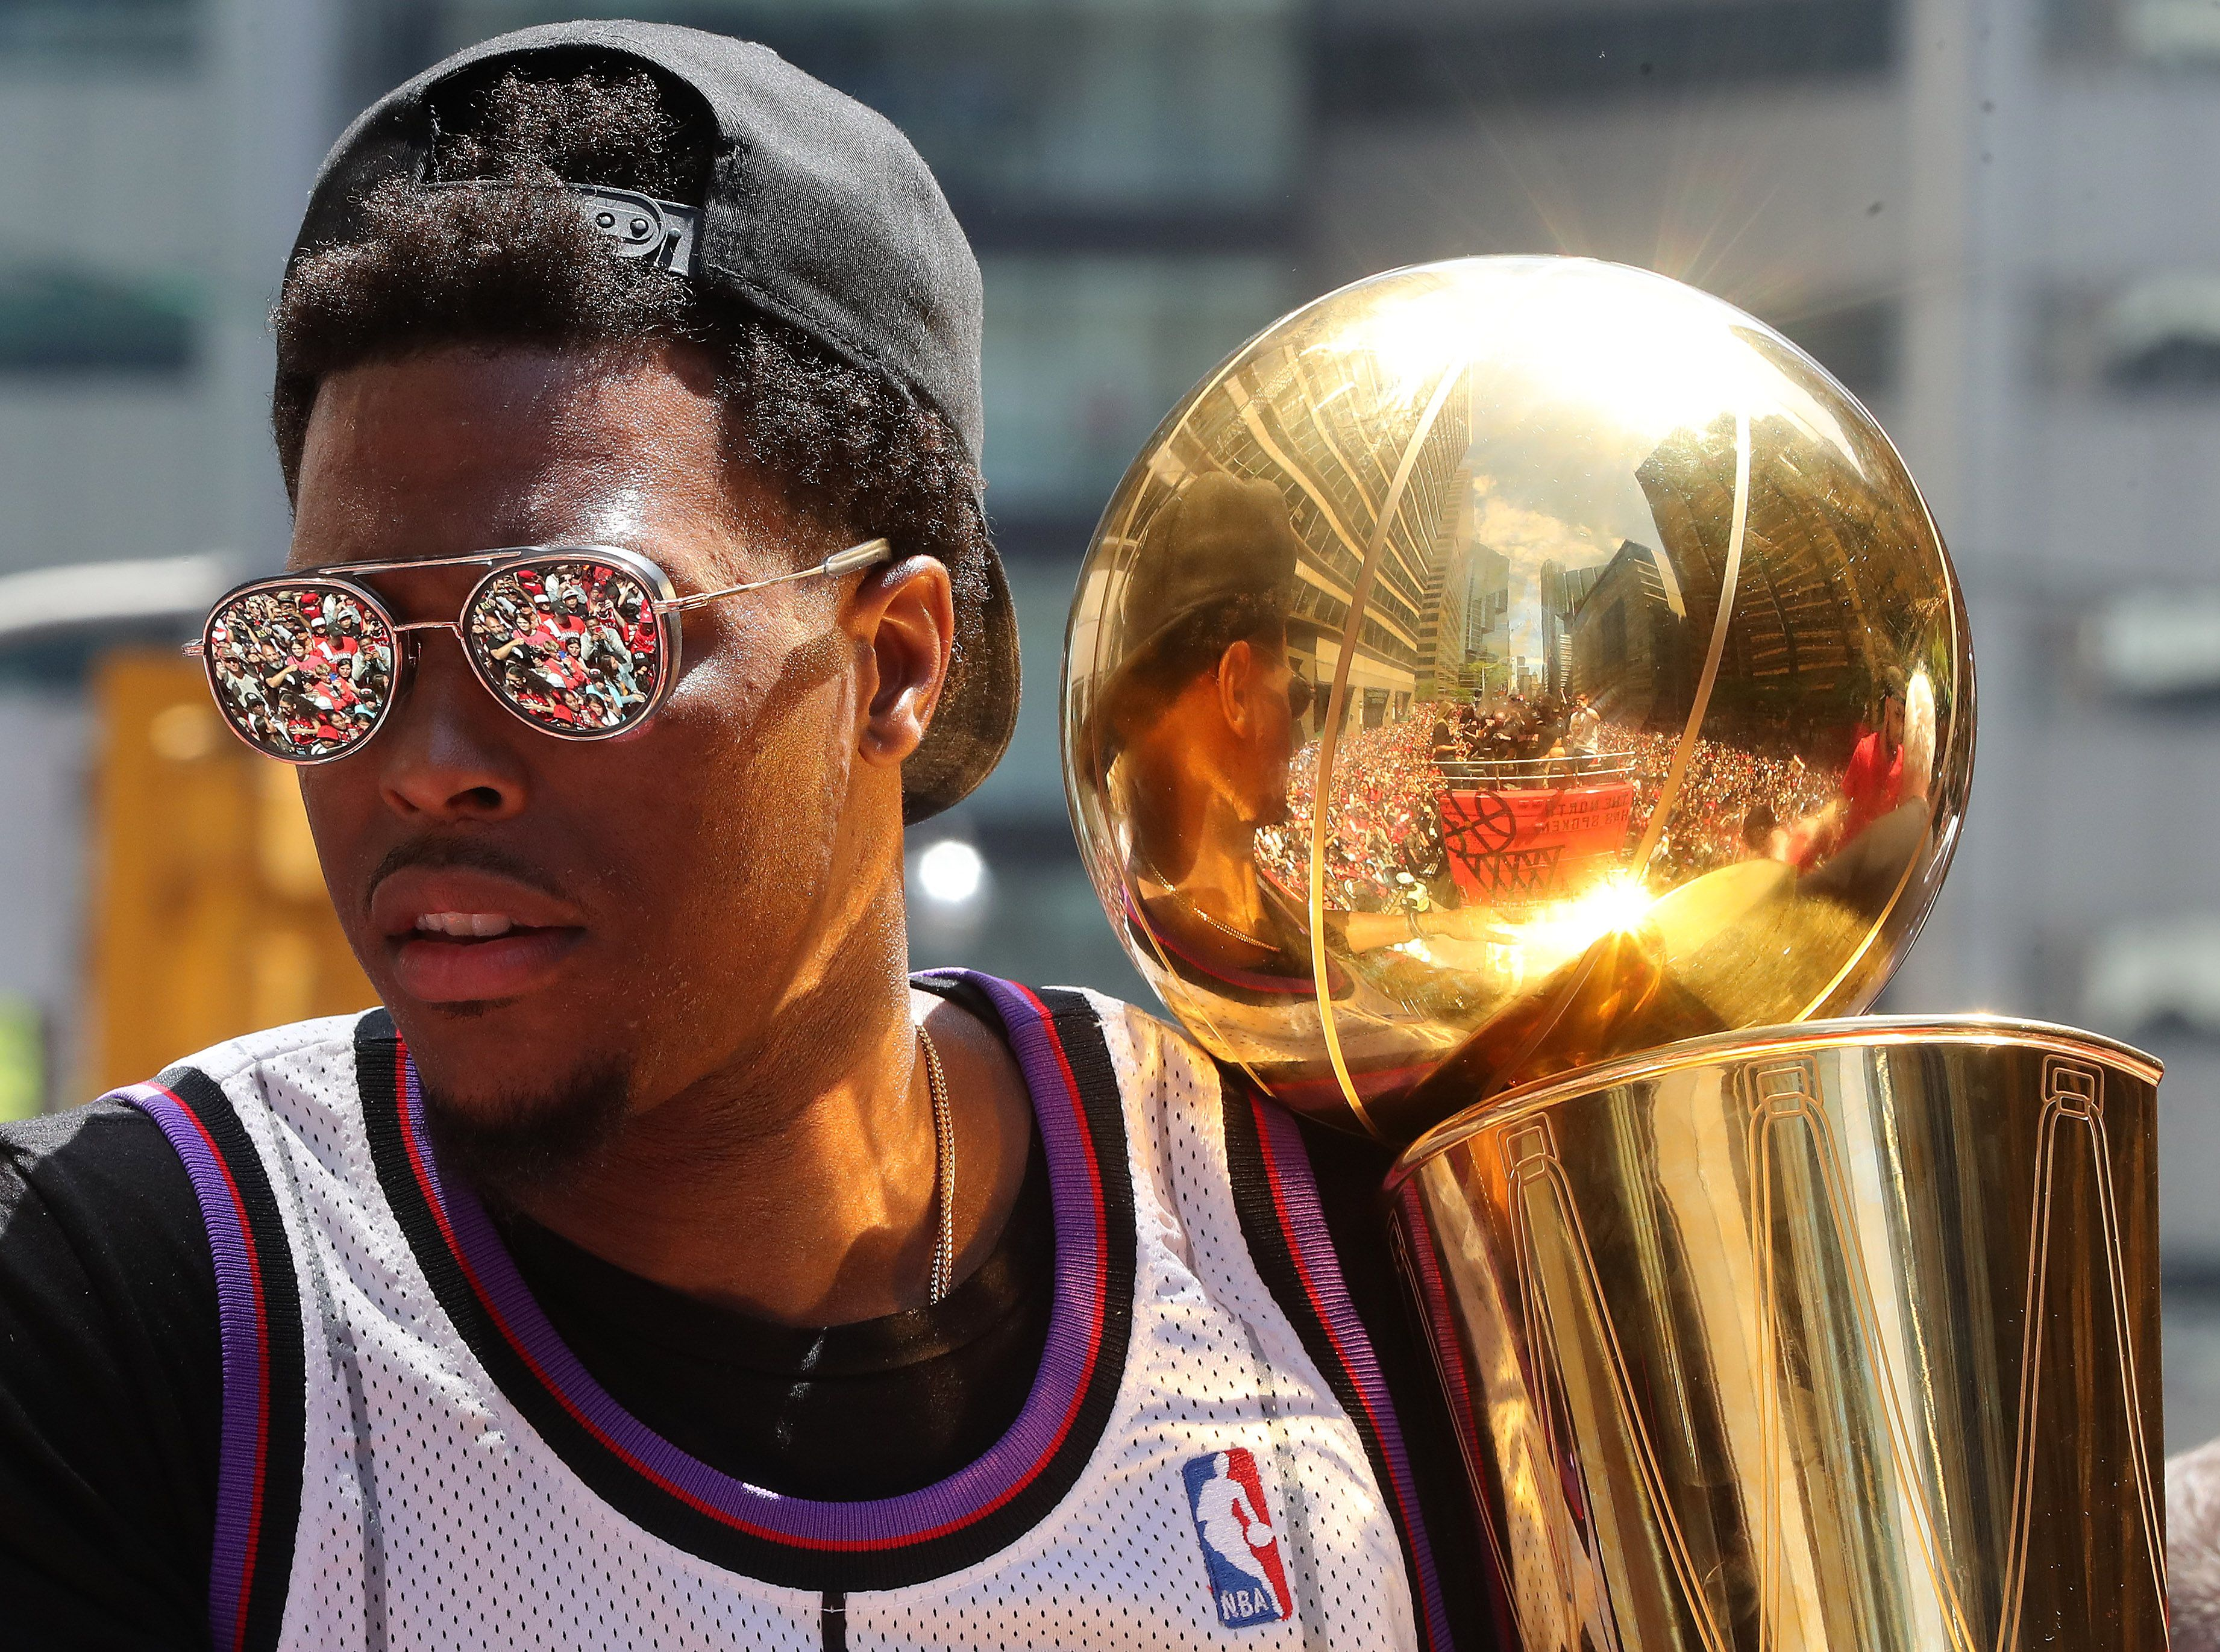 Kyle Lowry at the Raptors parade